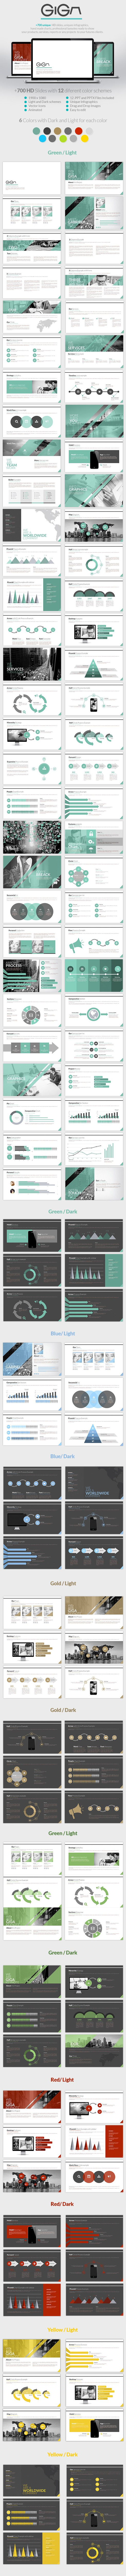 Giga | Powerpoint Presentation #creative red #colored #infographics • Click here to download ! http://graphicriver.net/item/giga-powerpoint-presentation/8535722?s_rank=703&ref=pxcr